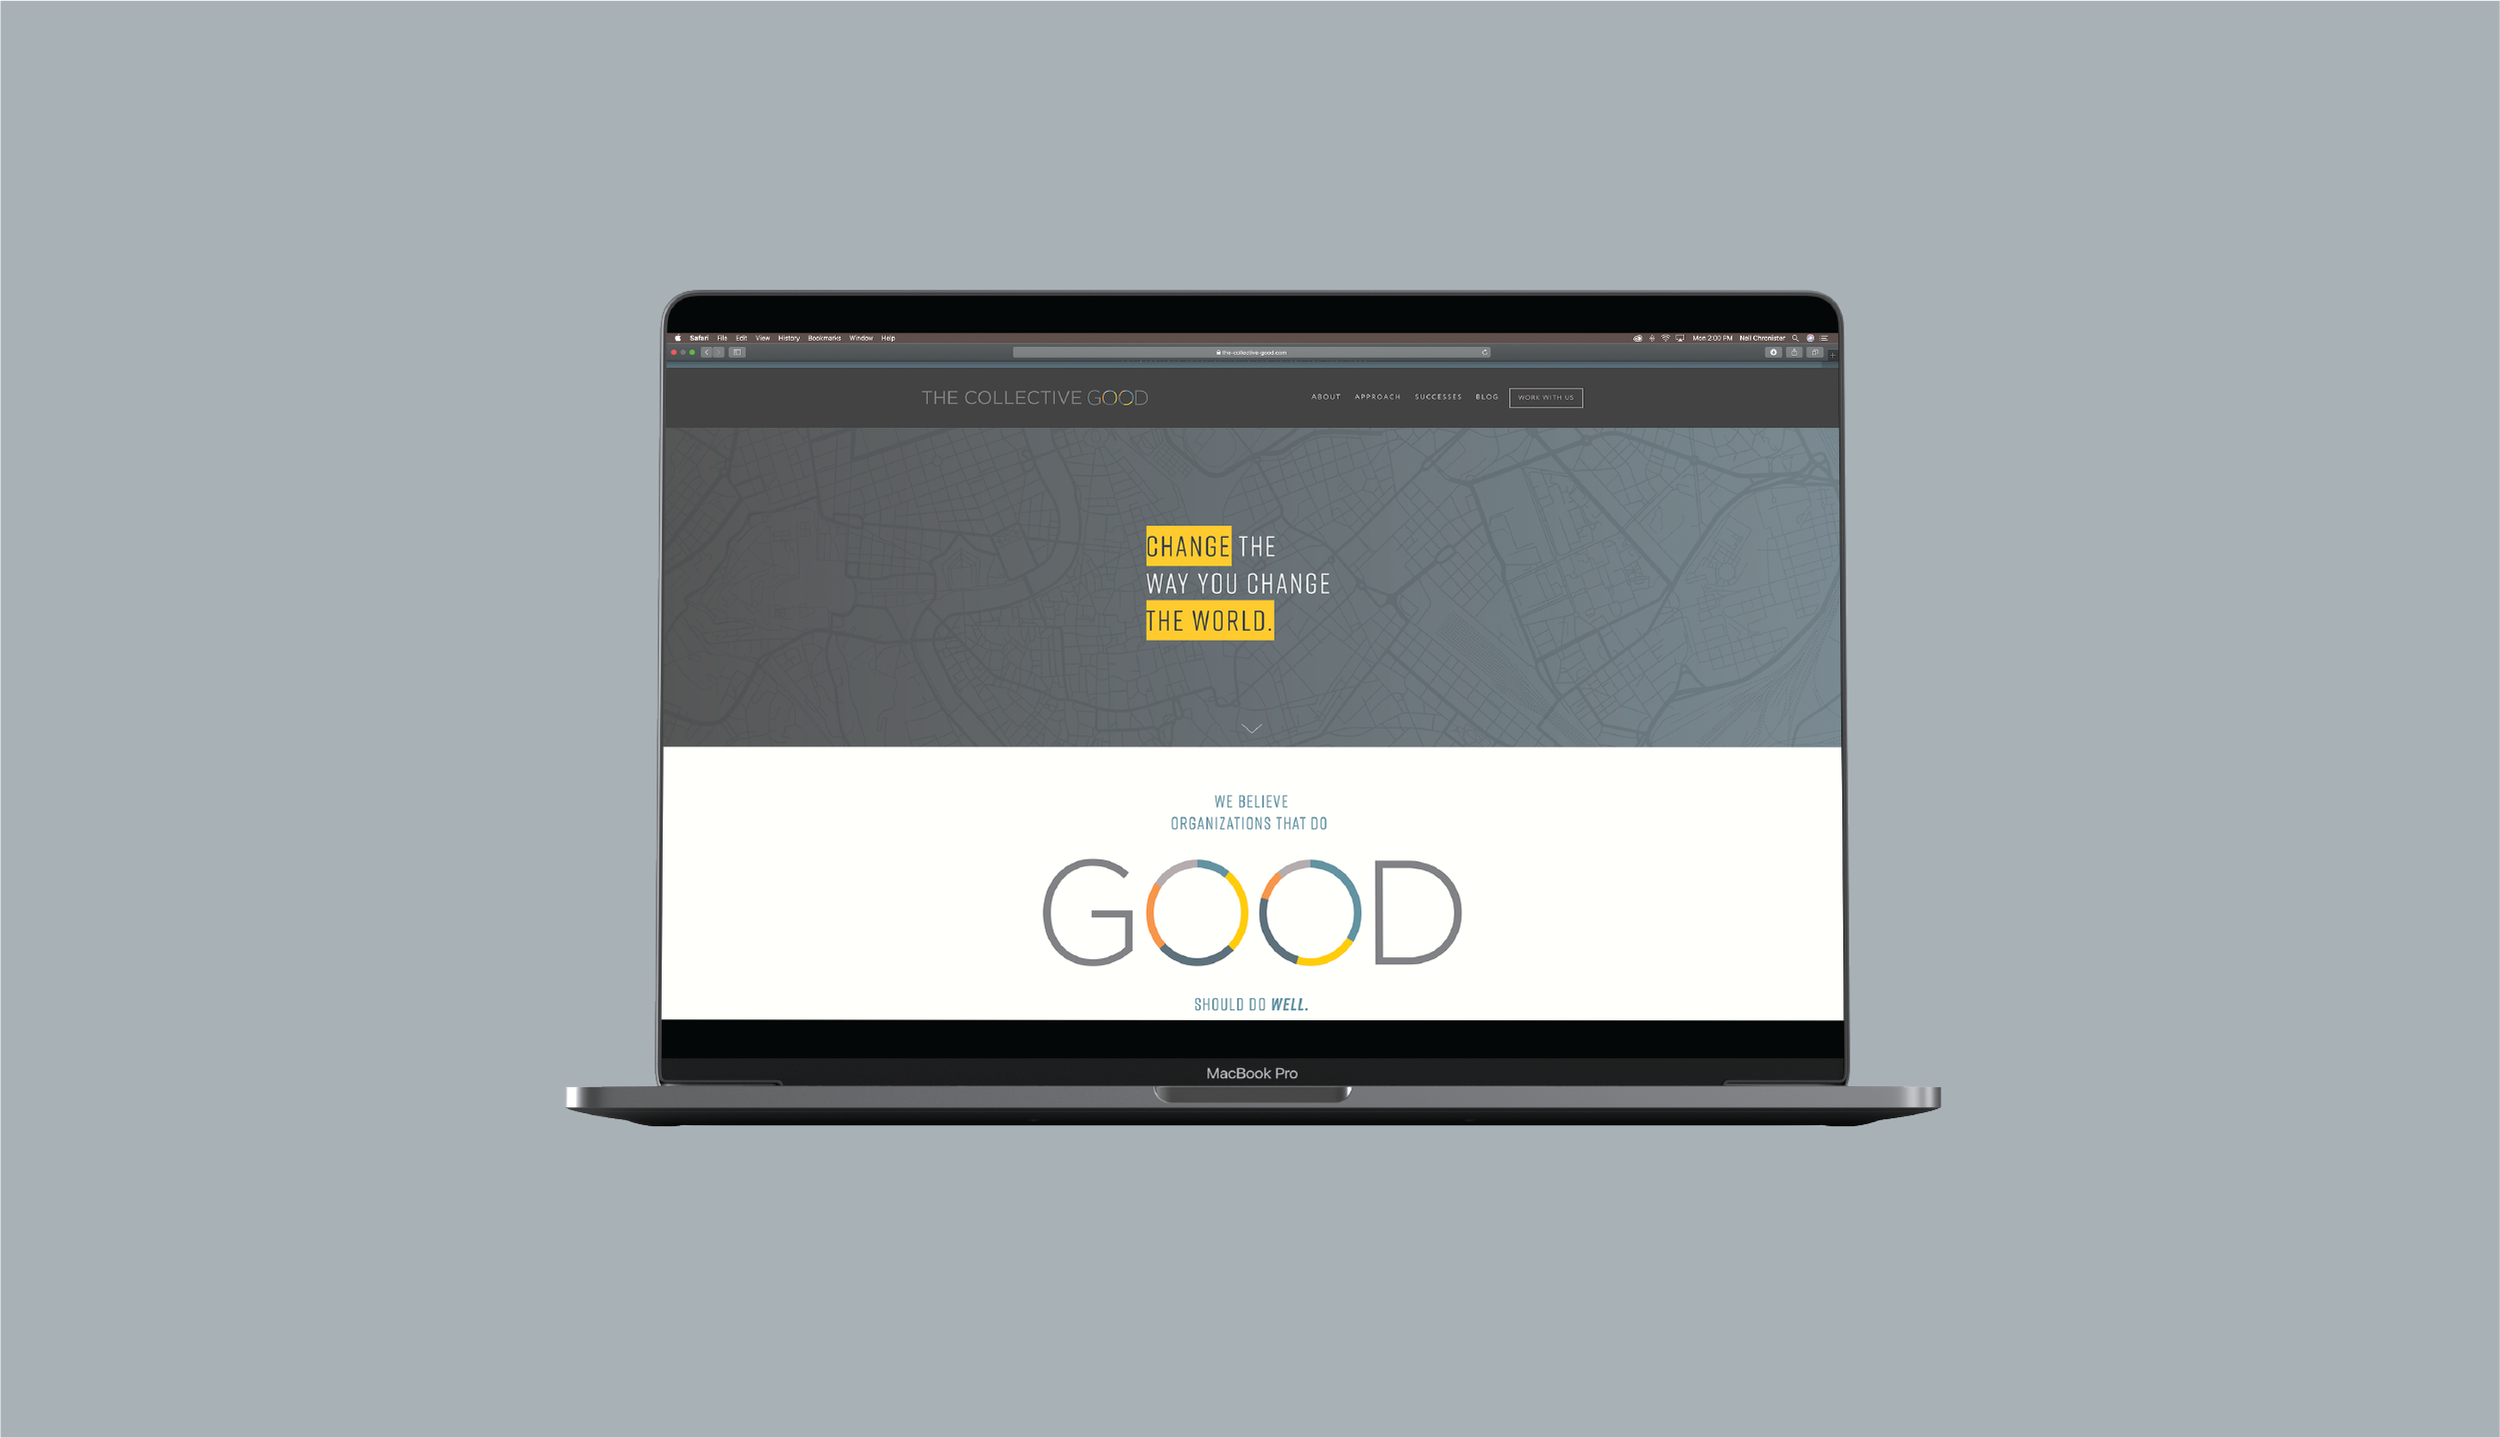 If you confuse, you lose. - The Collective Good needed to communicate their expertise without using any confusing jargon. With a simplified top navigation and a clear sales funnel, TCG's site became their 24-hour salesperson.